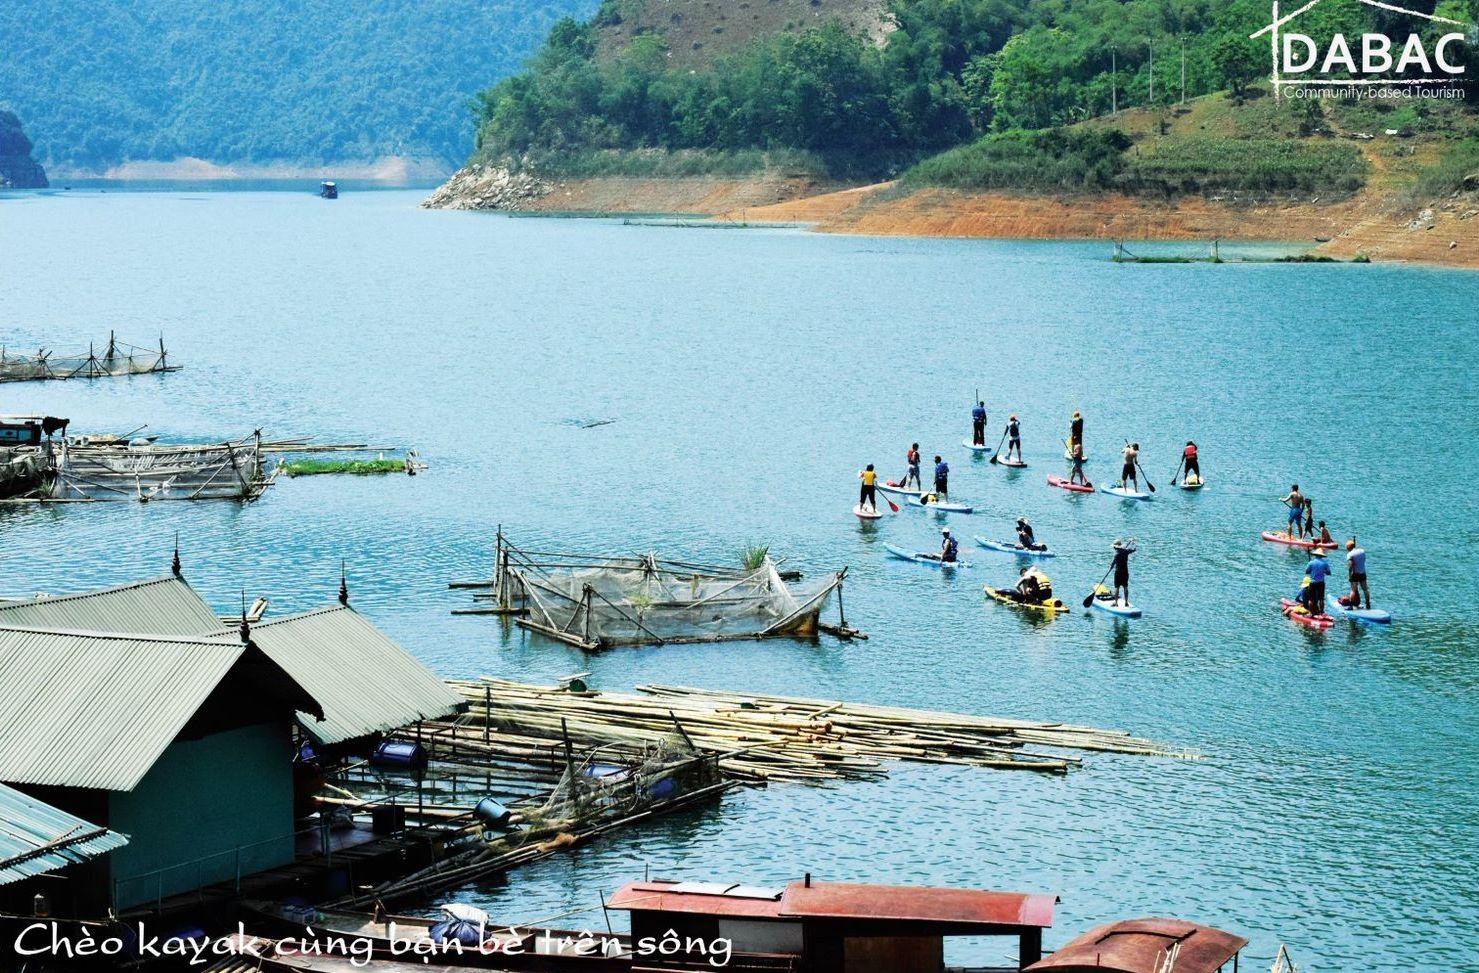 Da Bac district in Hoa Binh province of northwestern Vietnam offers a variety of activities from kayaking to trekking, appealing views of terraced rice paddies, and simple but comfortable homestay accommodation. (Photos courtesy of Da Bac Community-based Tourism)